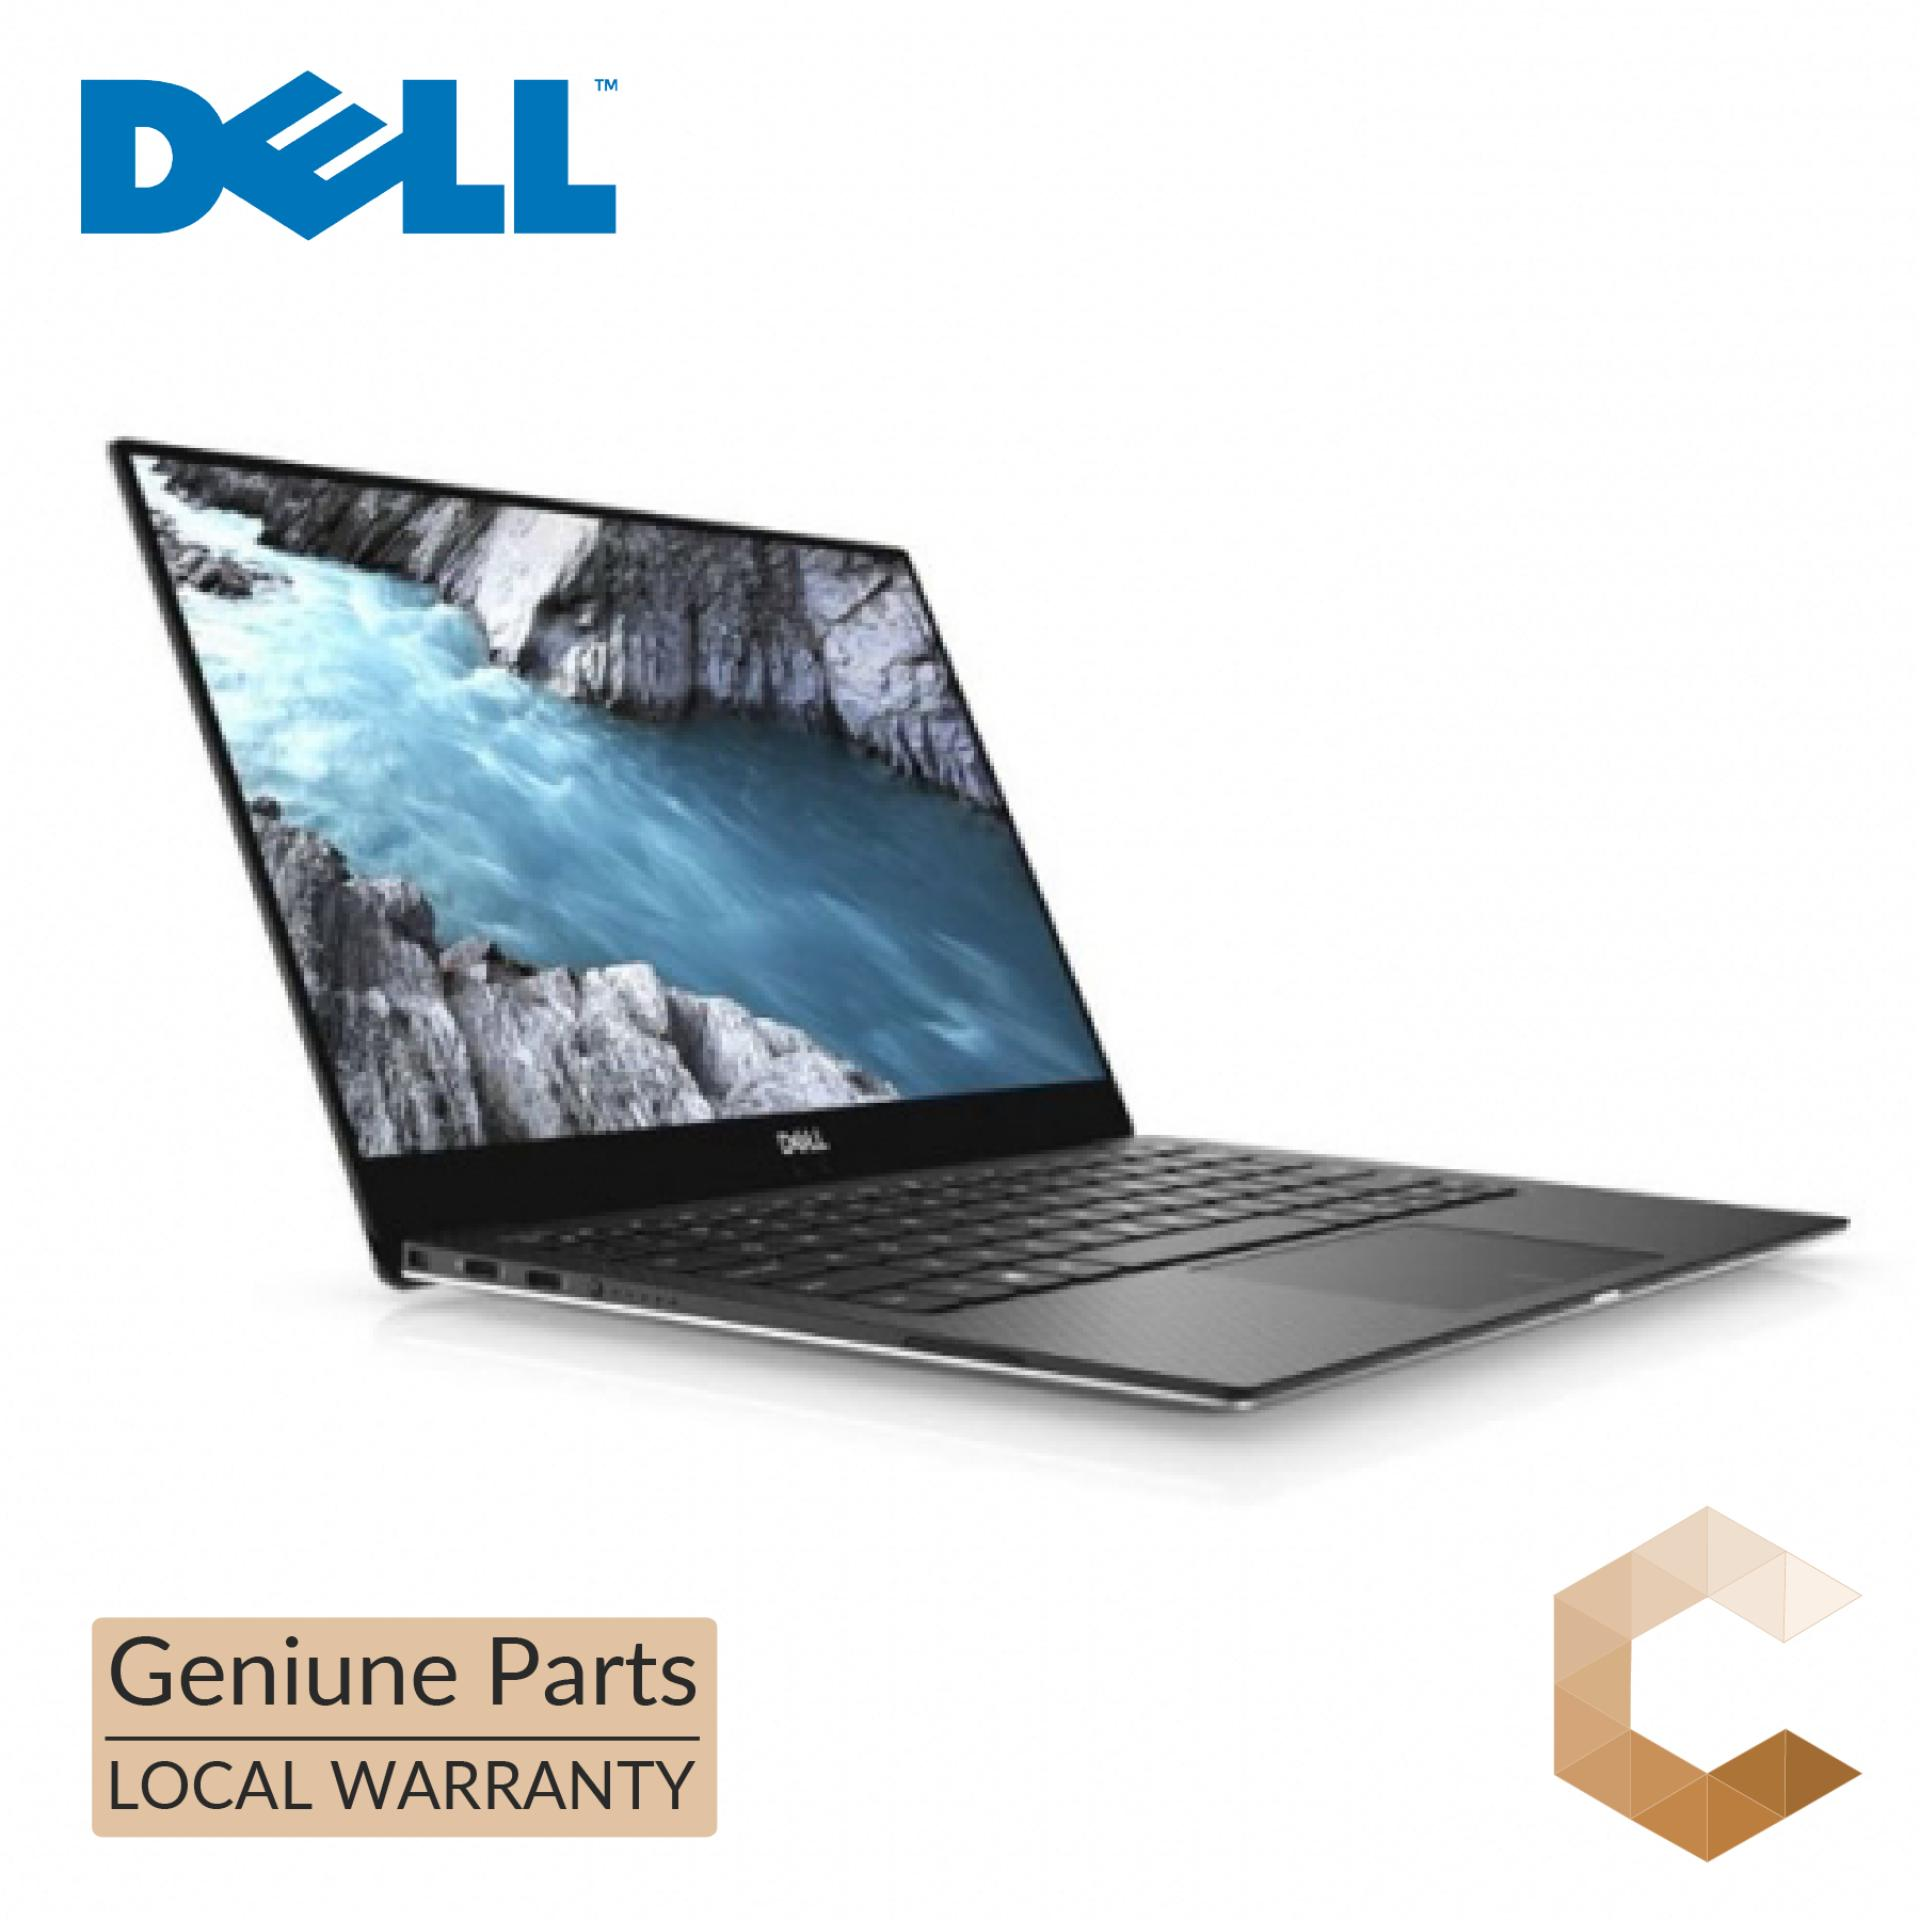 DELL NOTEBOOKS | 9370-85515SGL-W10-SLR